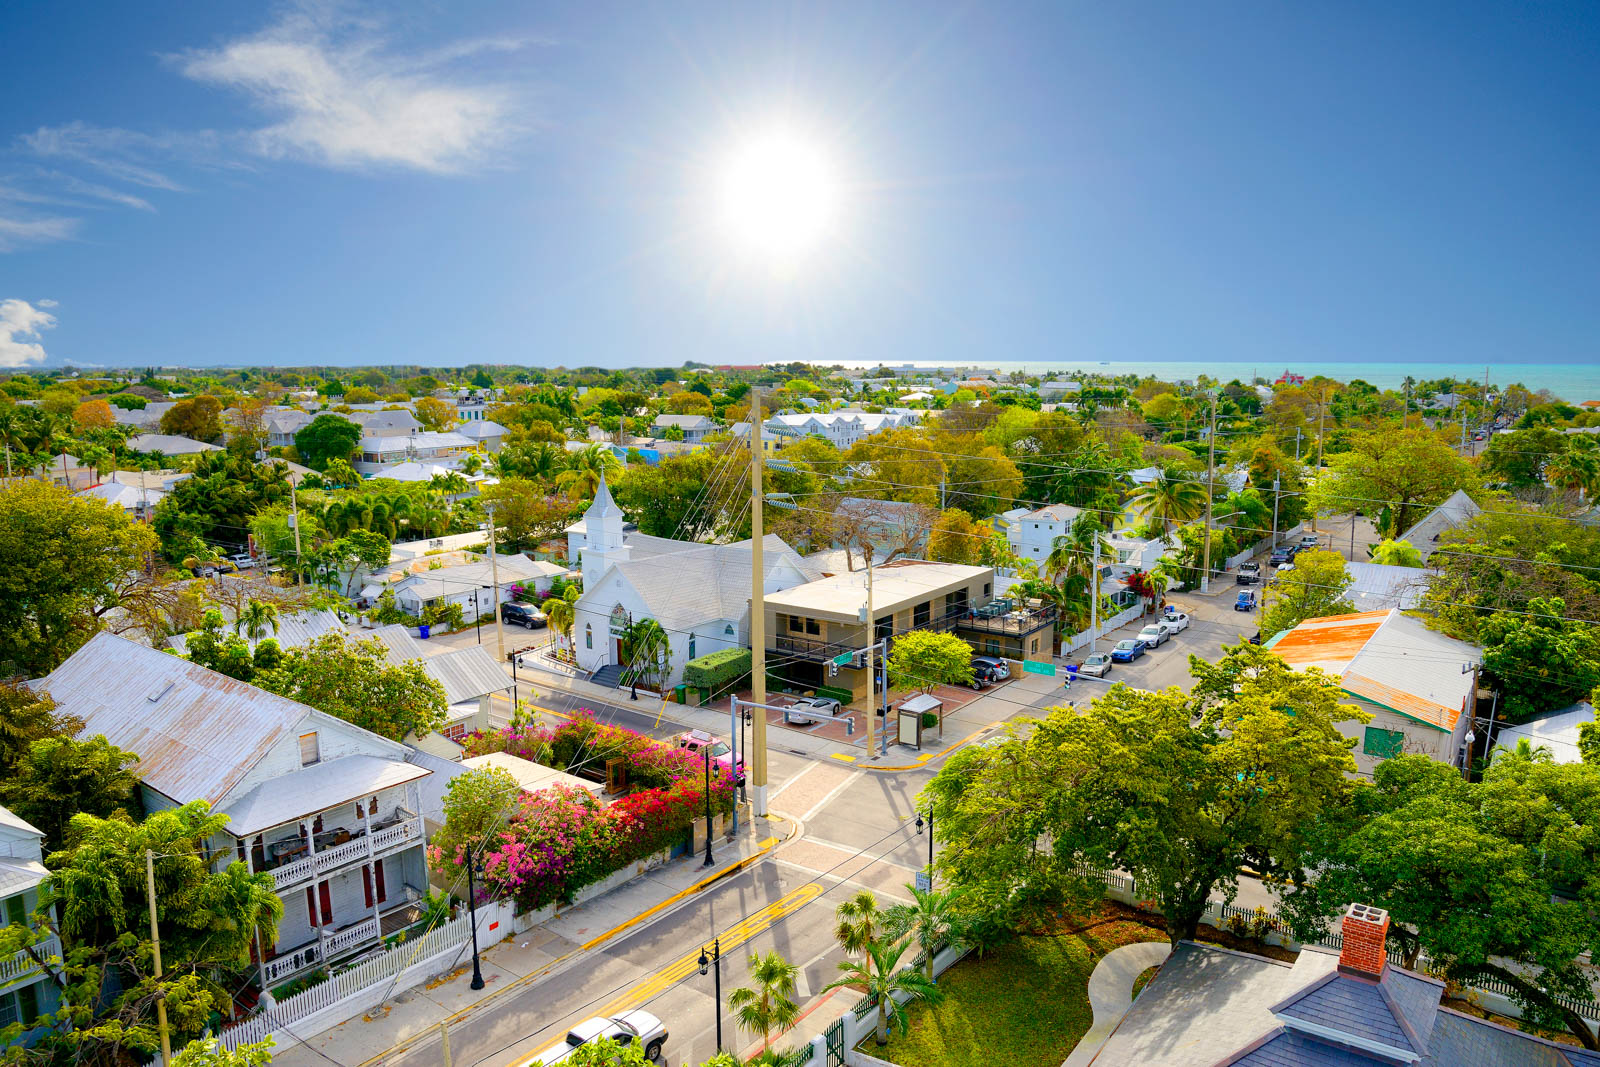 Roam around Key West which is one of the best things to do in South Florida. It is well within a day trip and among the best places to go in Florida.